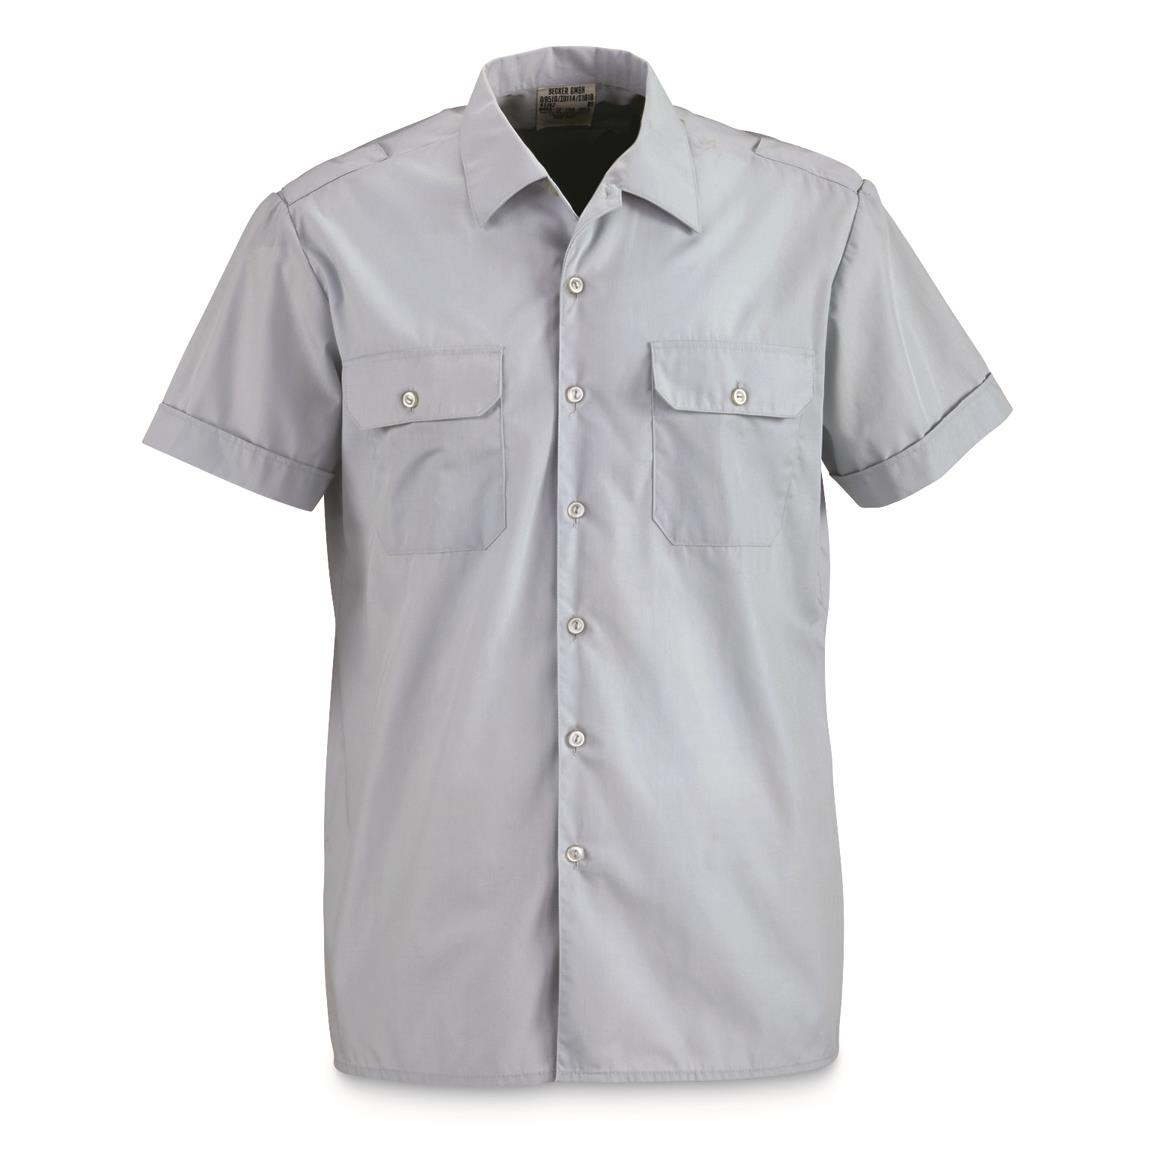 German Military Surplus Short Sleeved Service Shirts